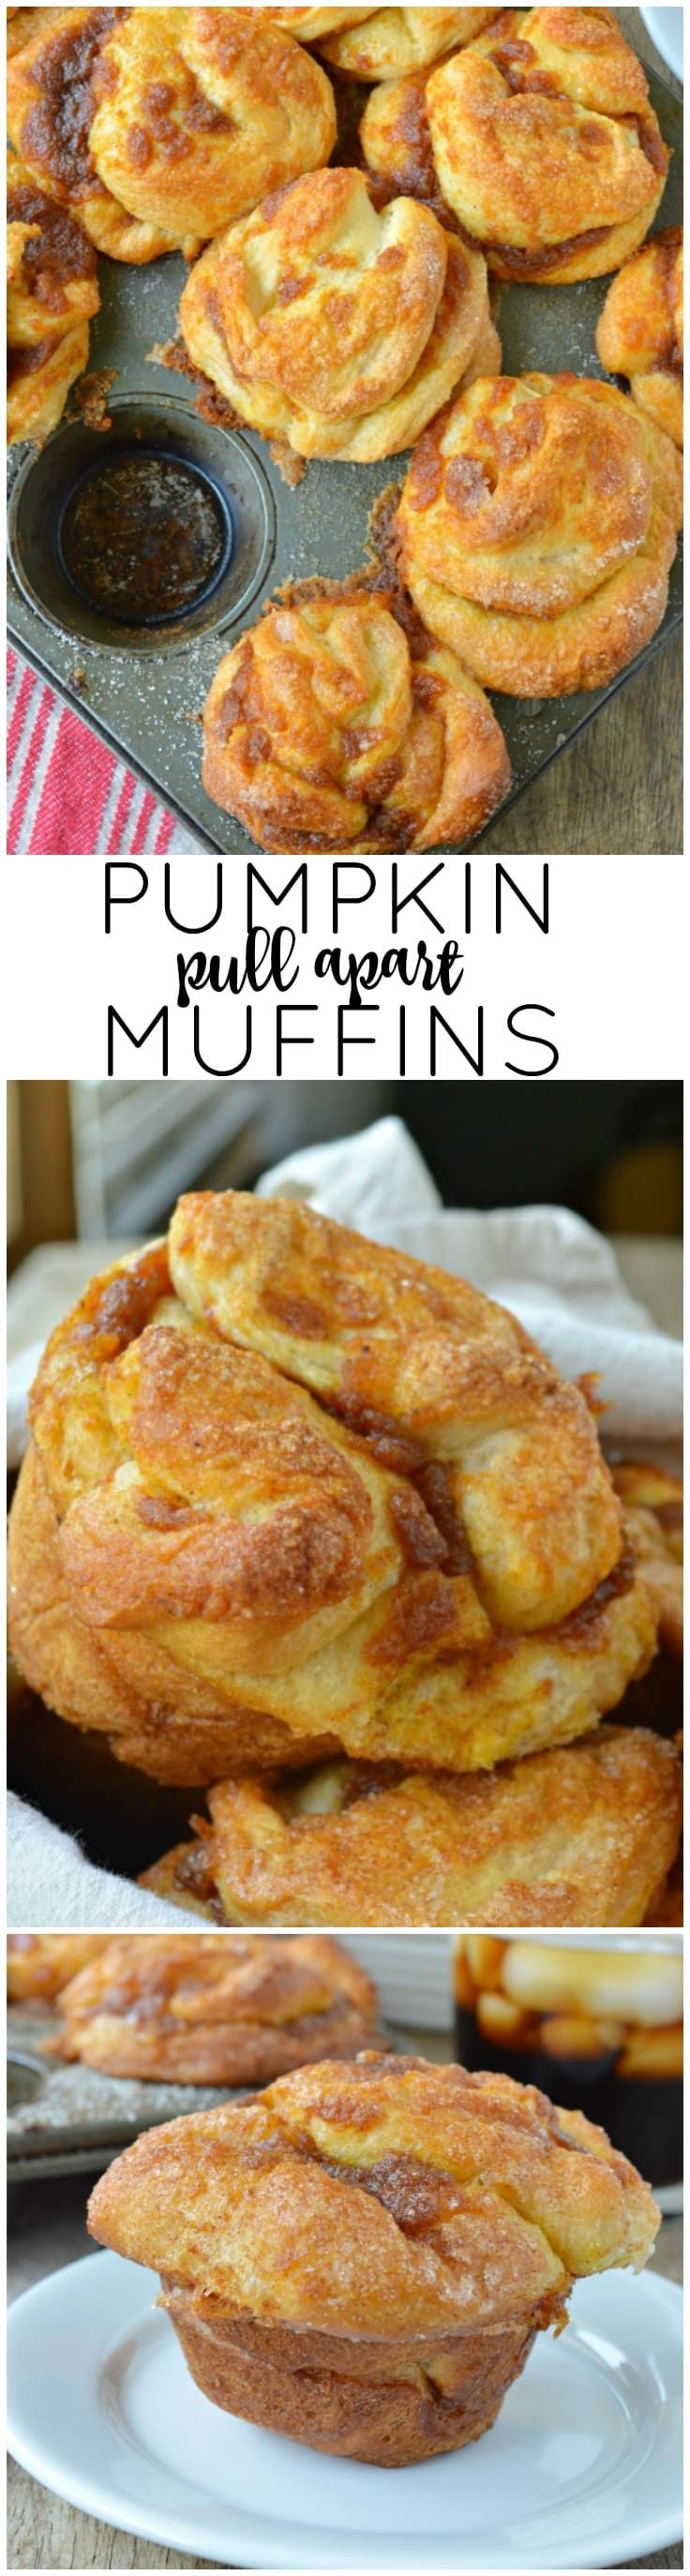 These Pumpkin Pull Apart Muffins are crazy easy. Like a mini version of monkey bread -- they start with refrigerated biscuits!